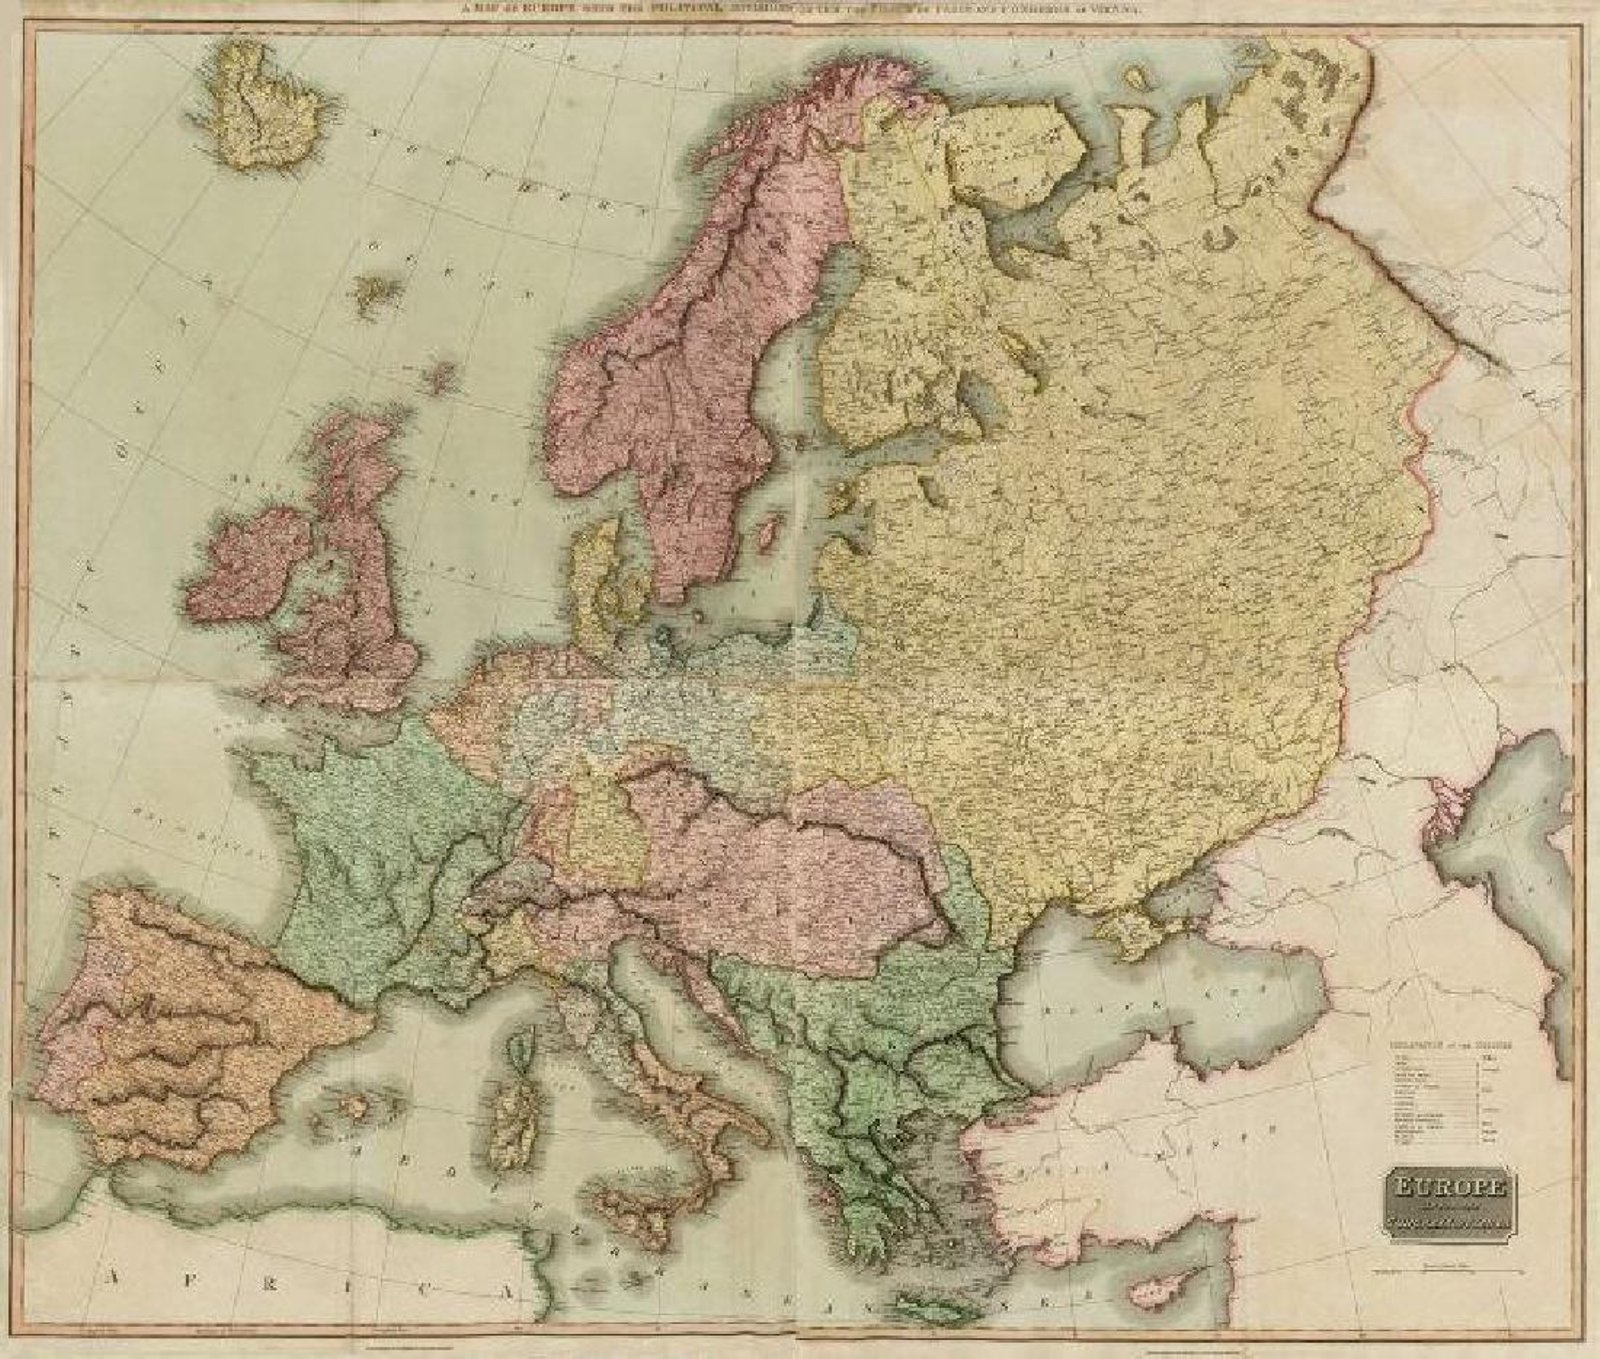 Chart your grand tour of europe at jasper52 map sale nov 21 collectors can travel back in time to chart such trips in a jasper52 online auction of antique maps and atlases of europe on tuesday nov 21 gumiabroncs Choice Image